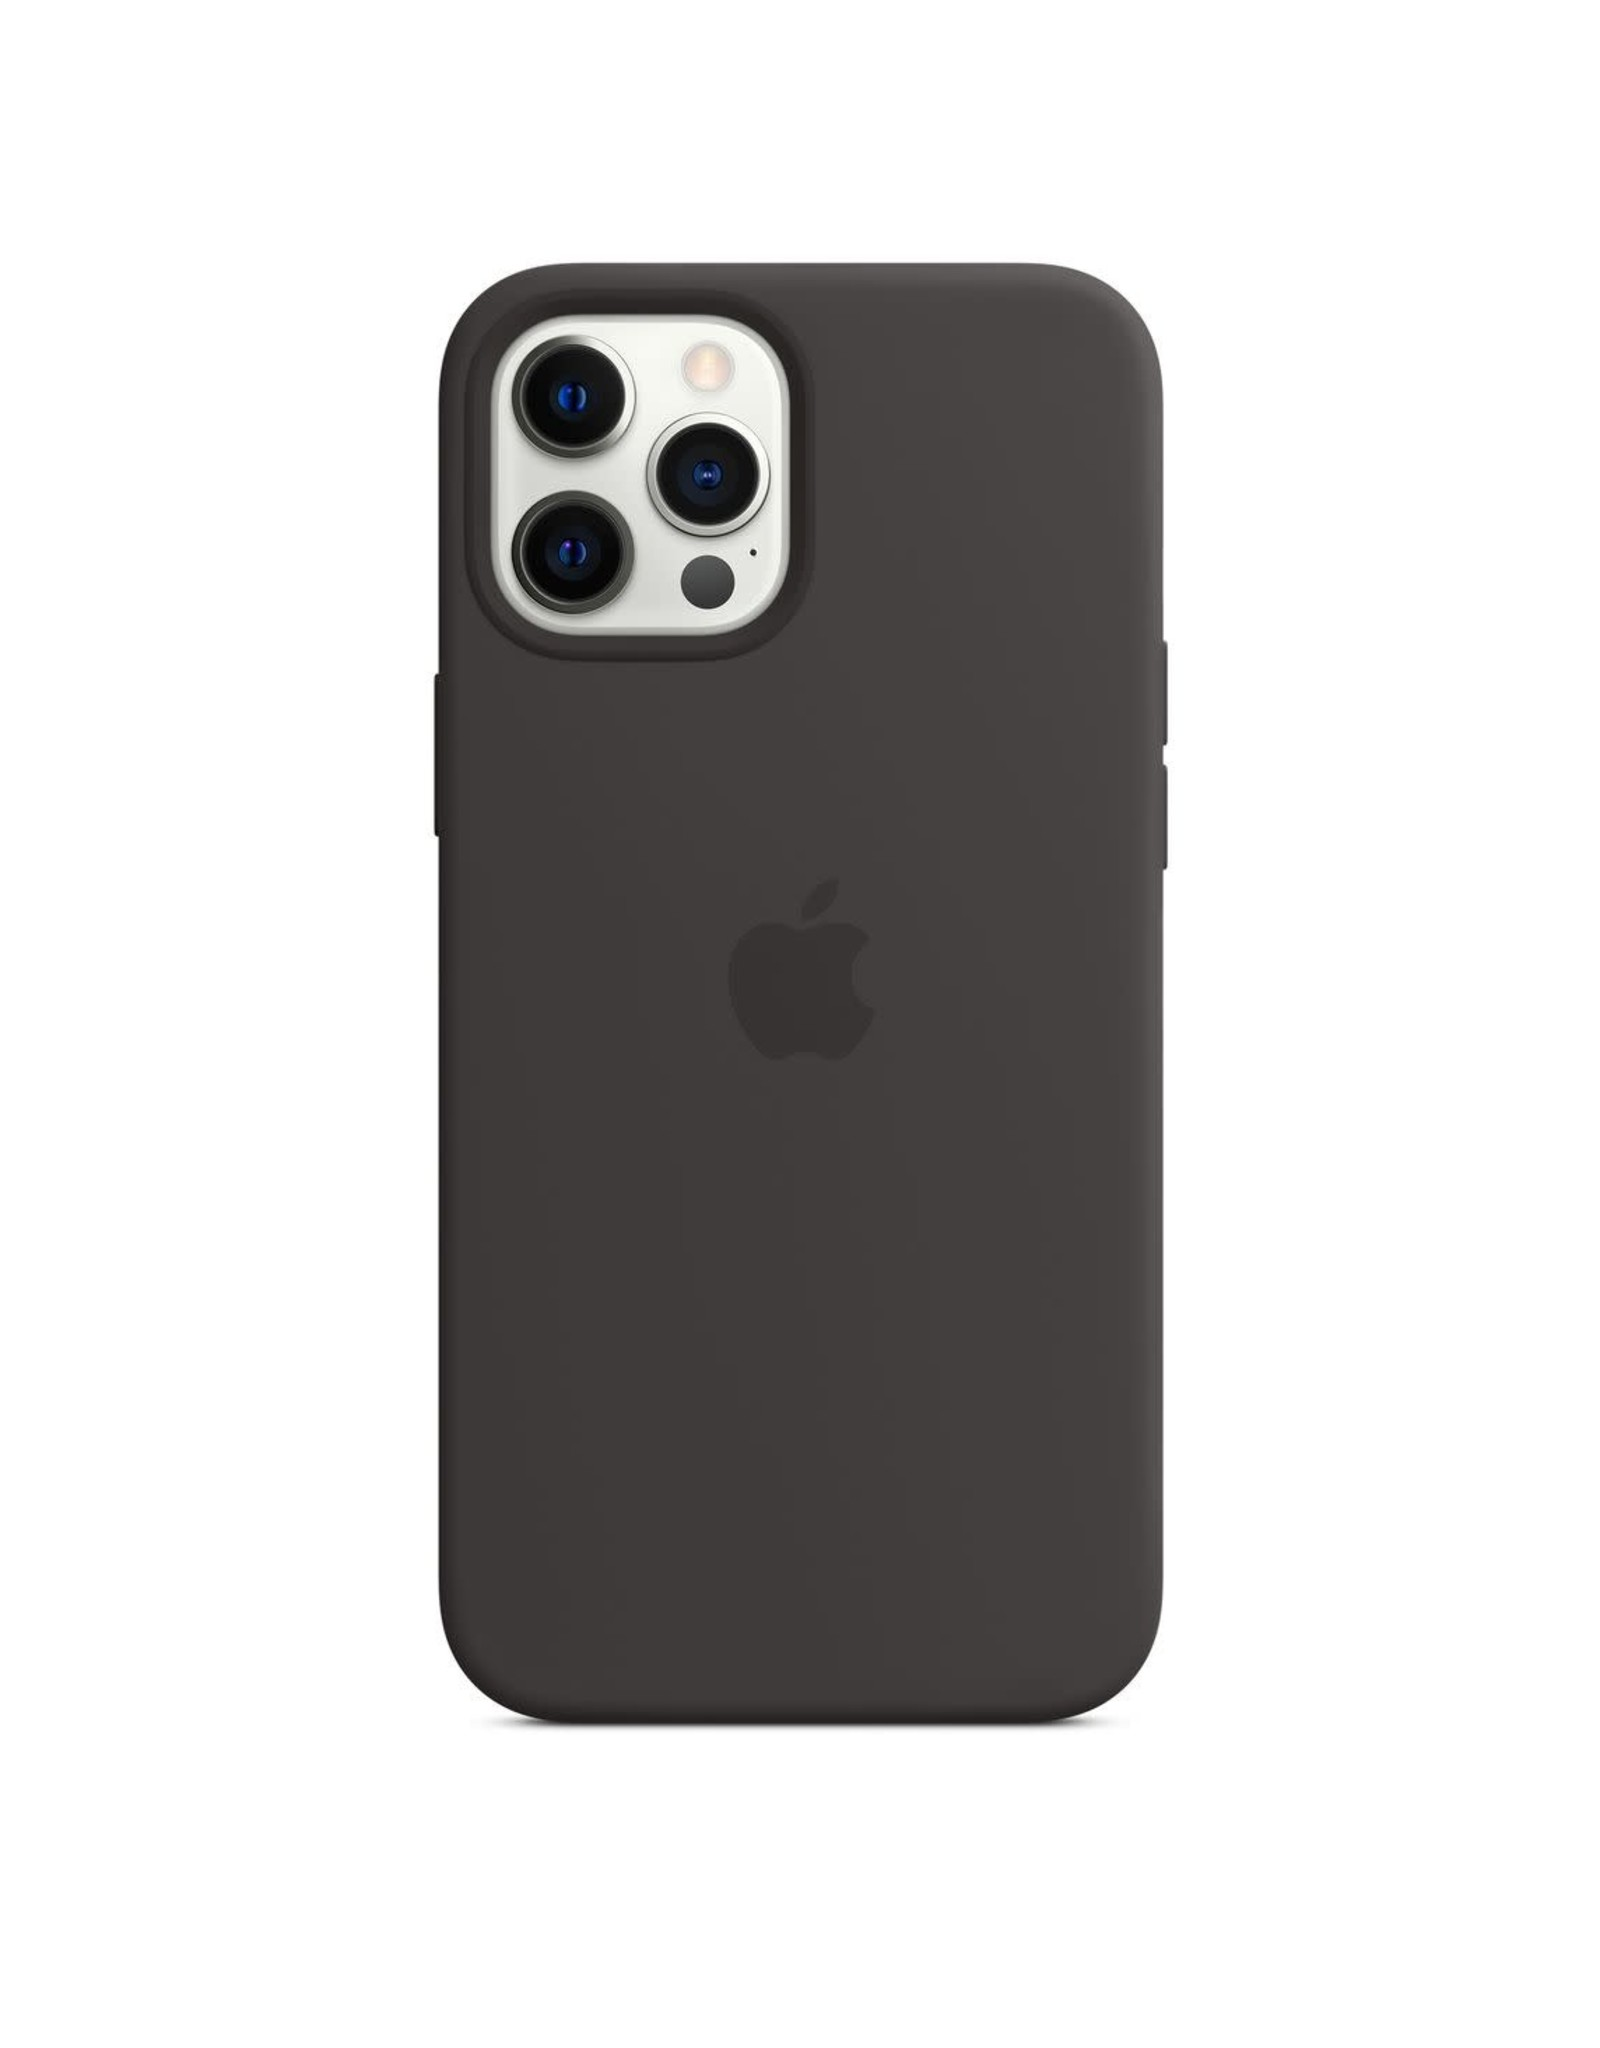 Apple iPhone 12 Pro Max Case with MagSafe